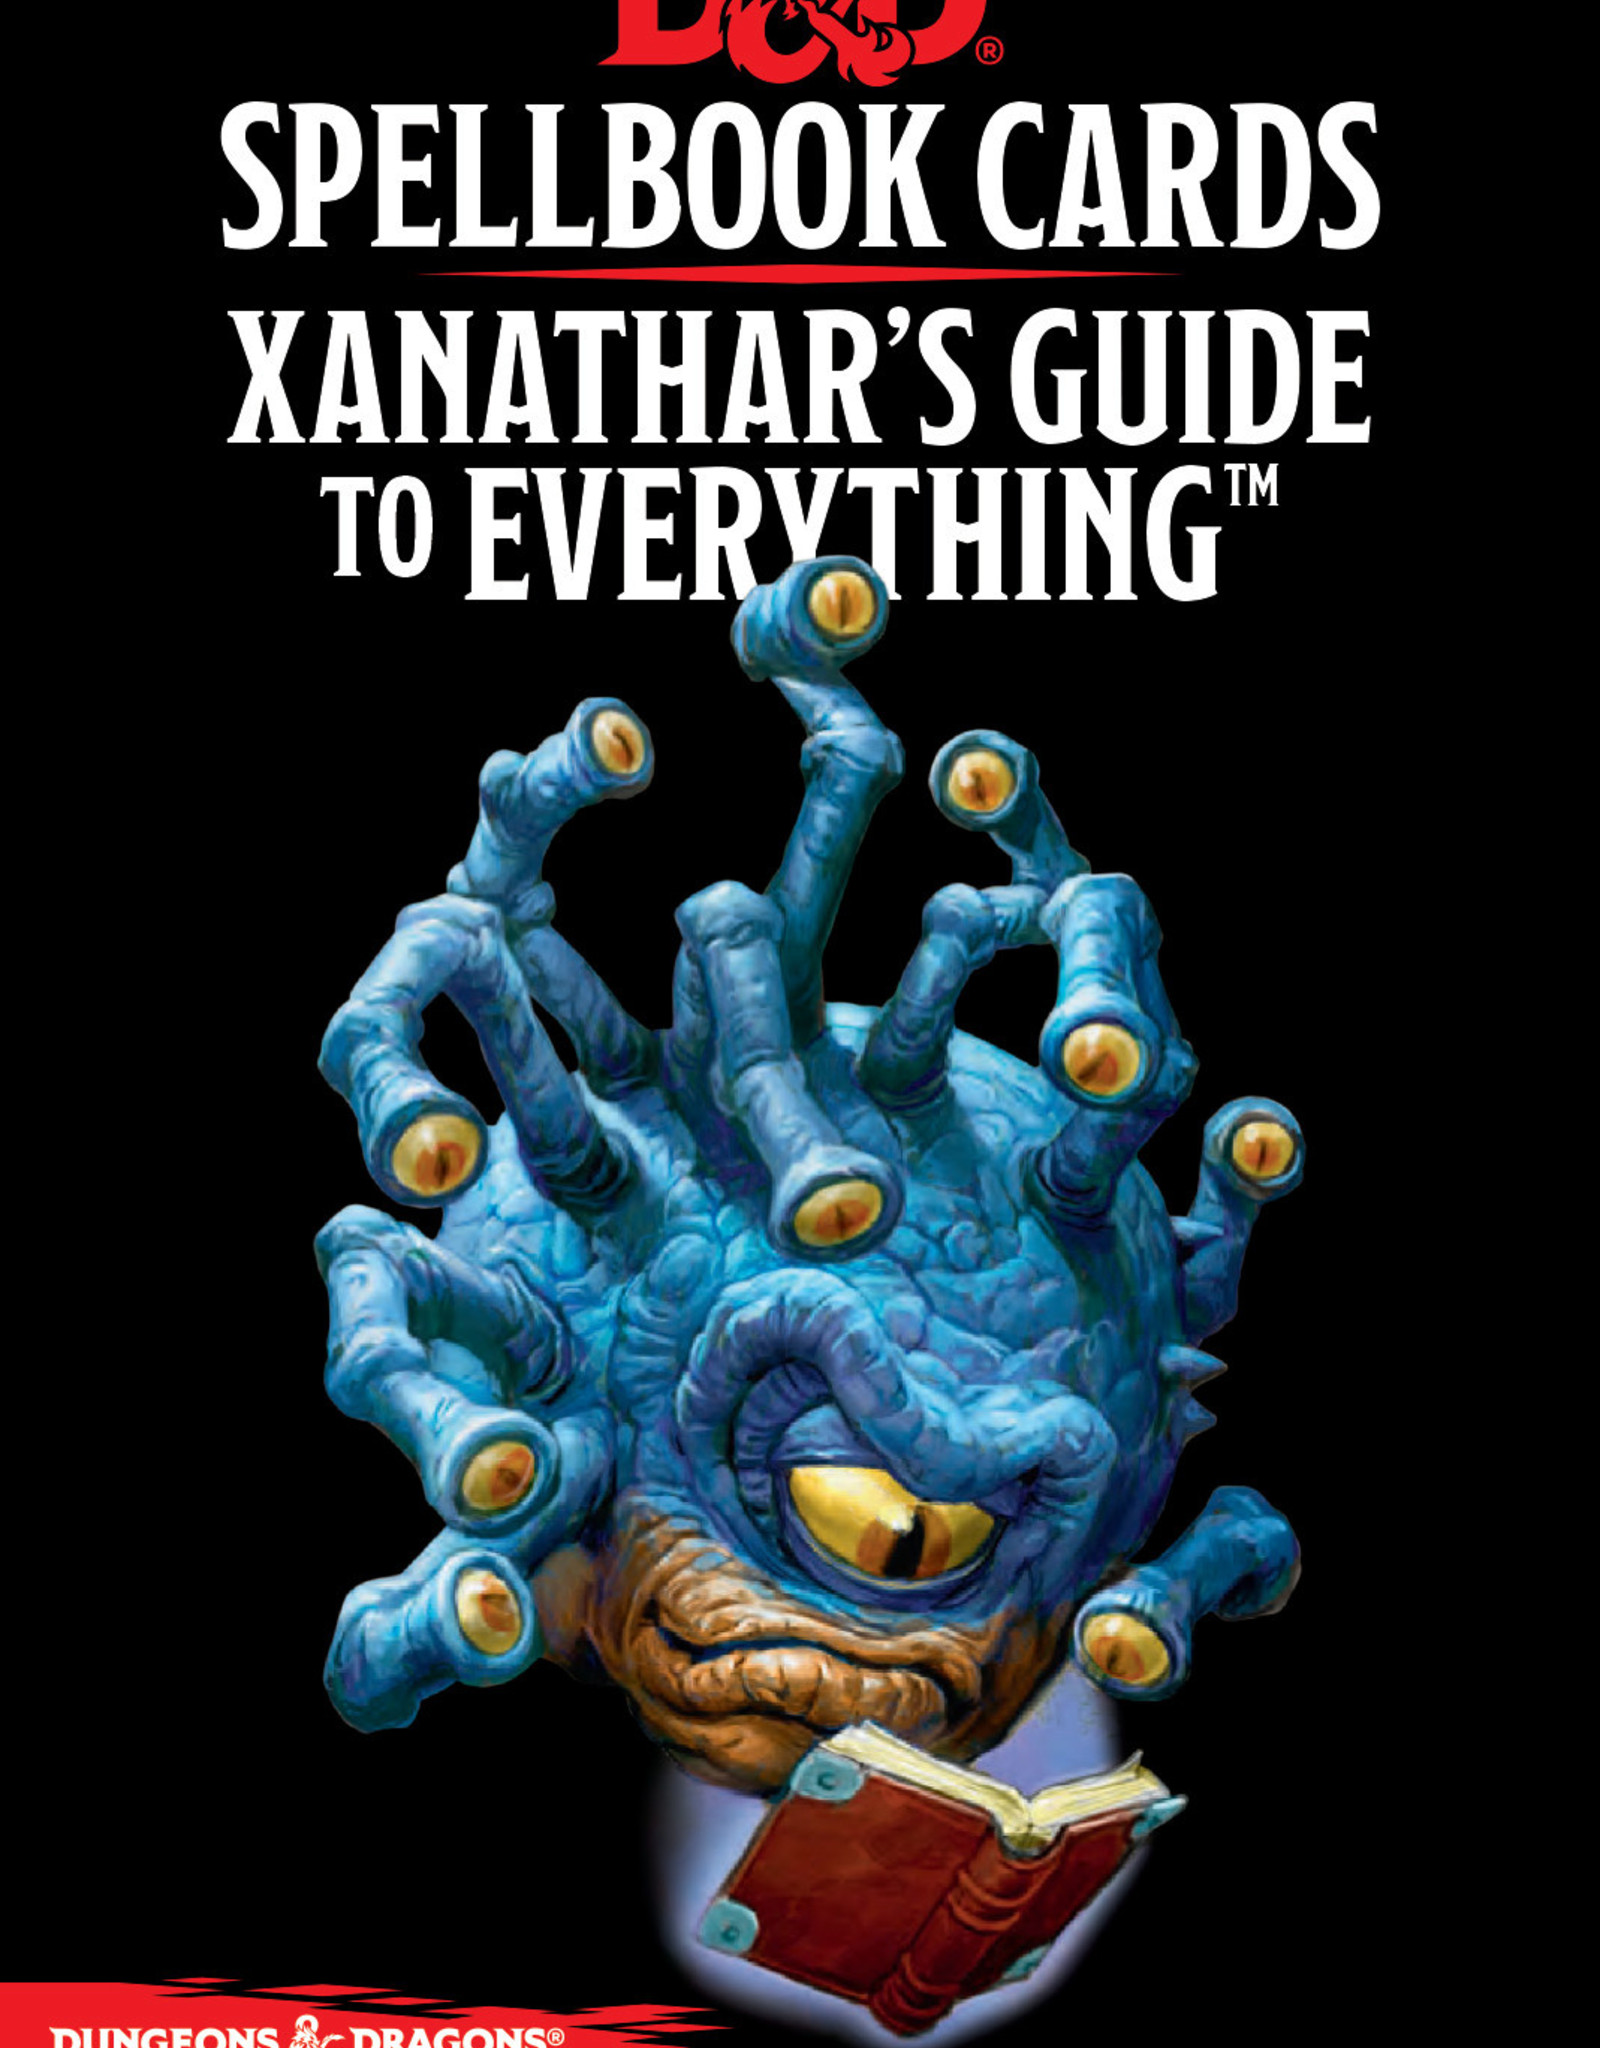 Spellbook  Cards Spellbook Cards - Xanathar's Guide to Everything